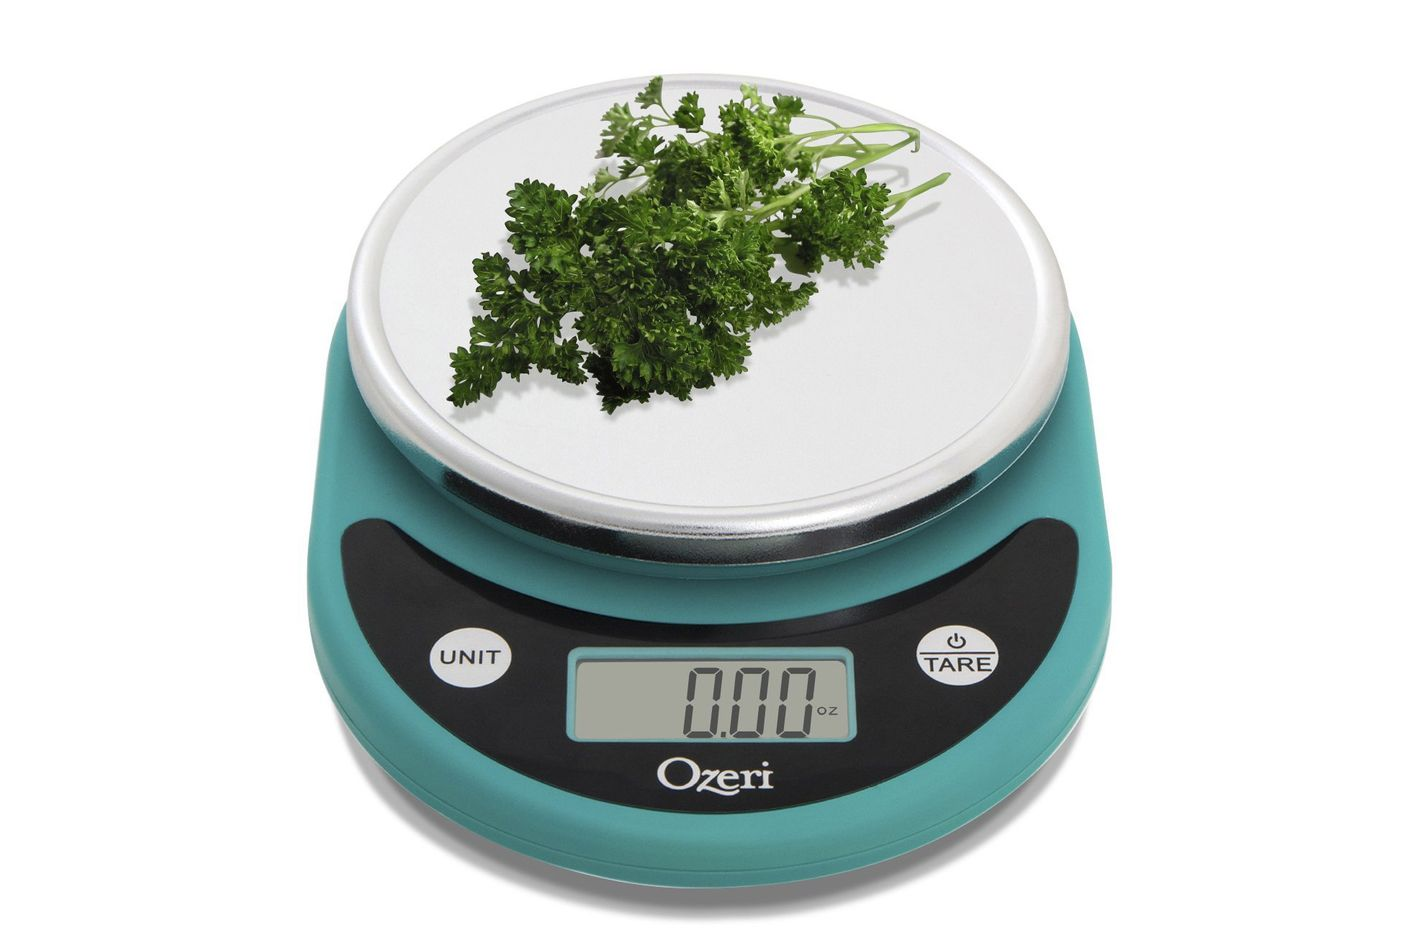 14 Best Kitchen Scale, Food Scale Reviews on Amazon